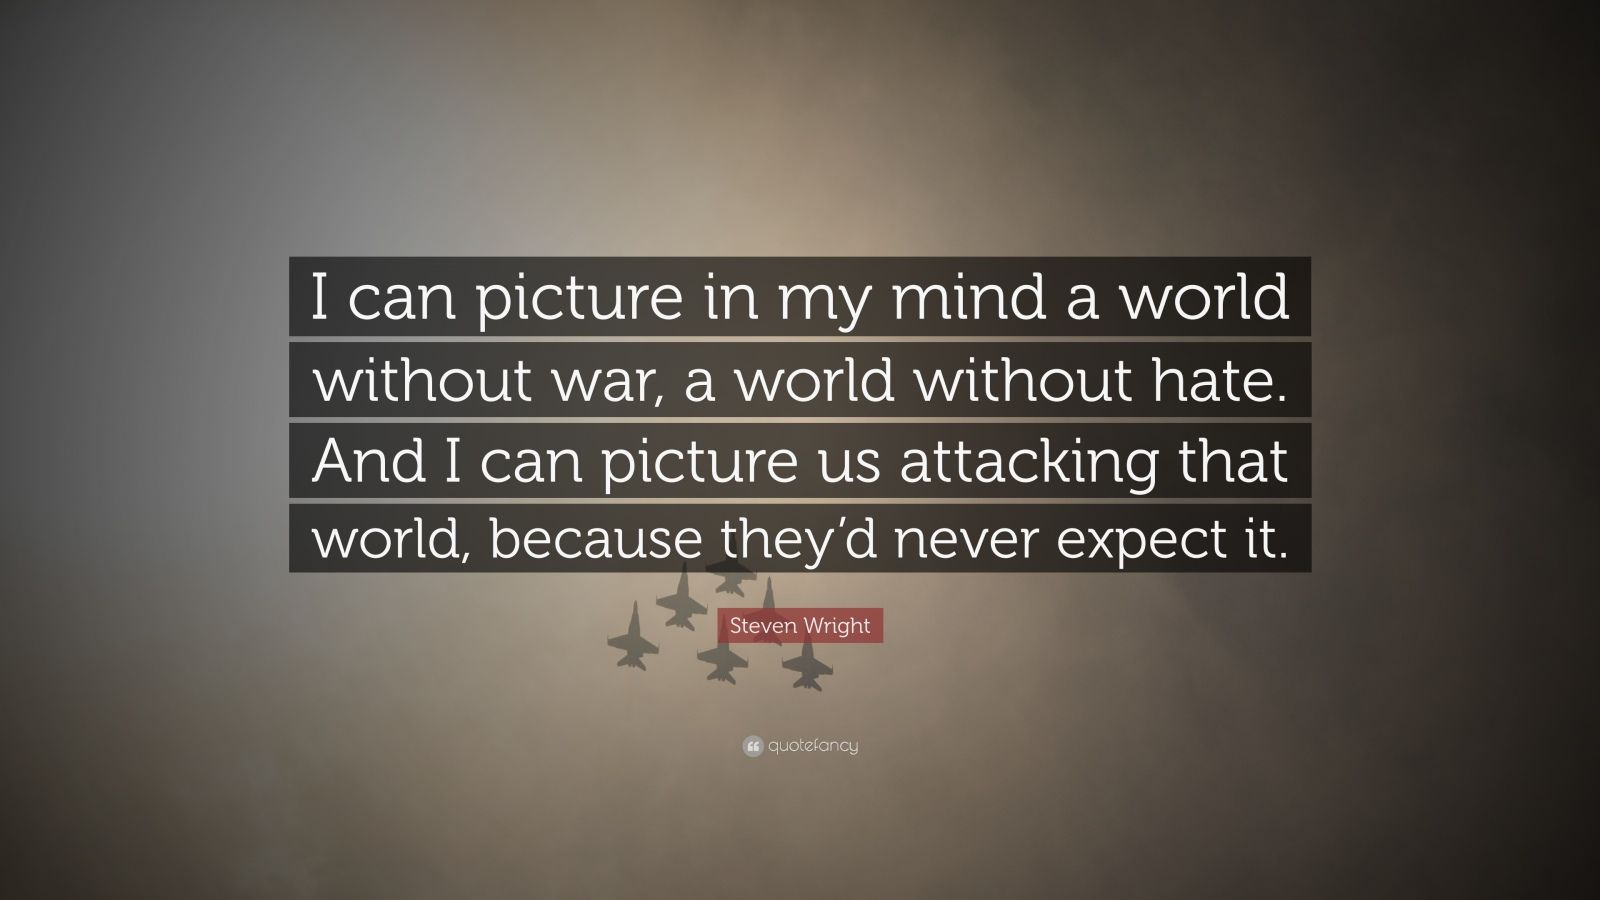 """Steven Wright Quote: """"I can picture in my mind a world without war, a world without hate. And I can picture us attacking that world, because they'd never expect it."""""""